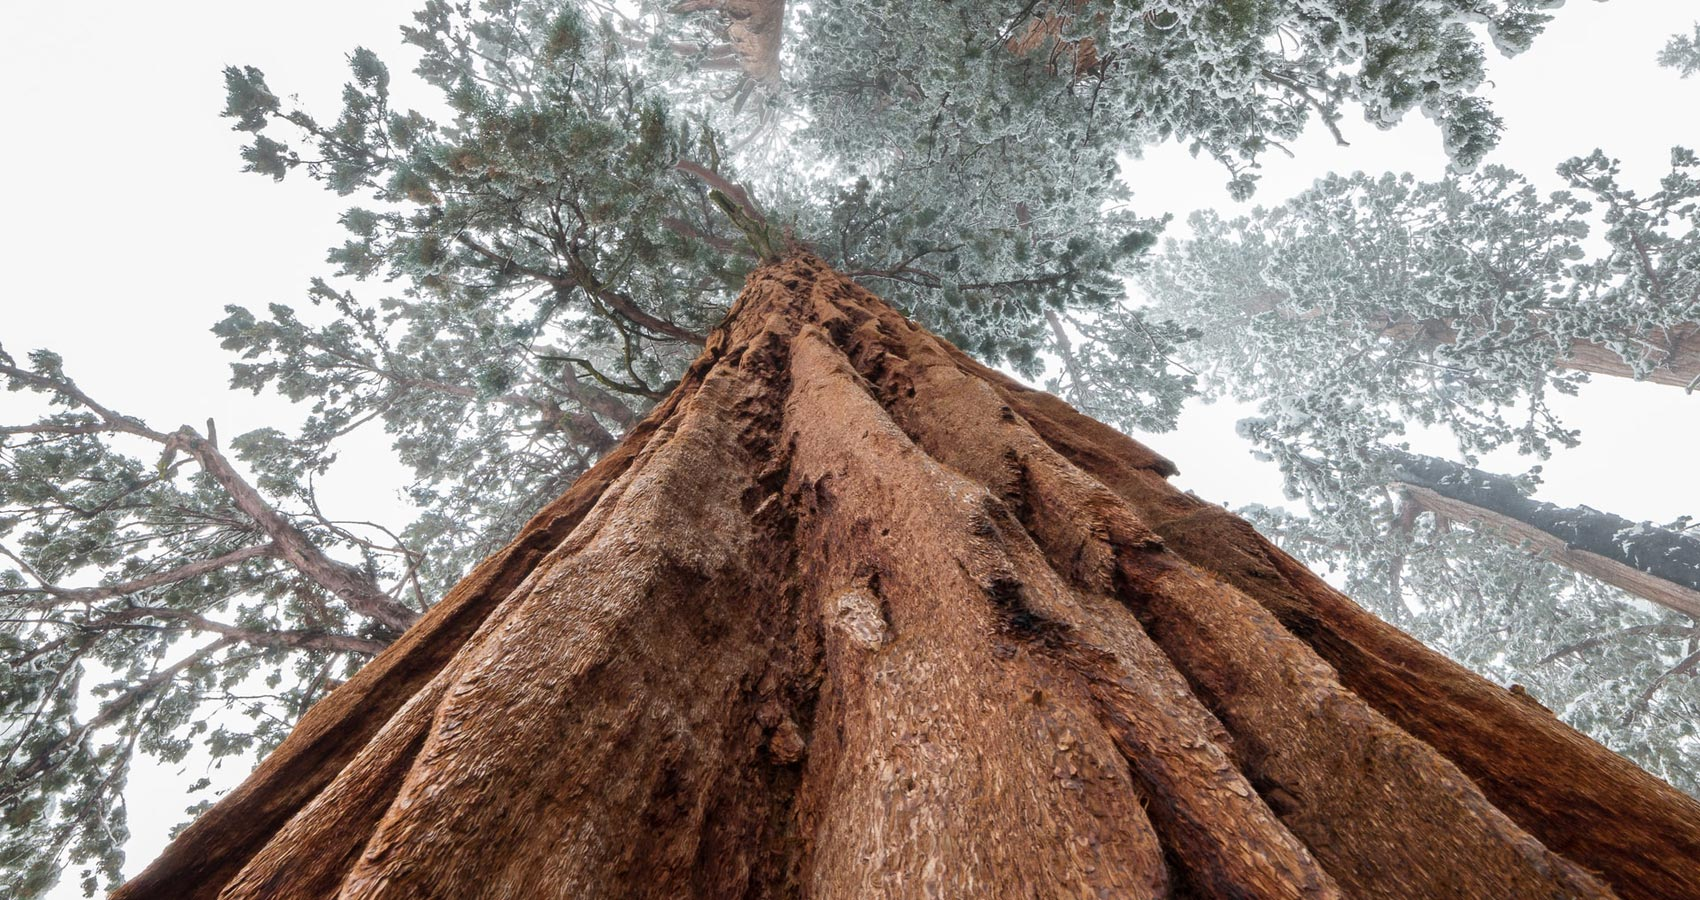 Sequoia, micropoetry written by Kevin Taylor at Spillwords.com